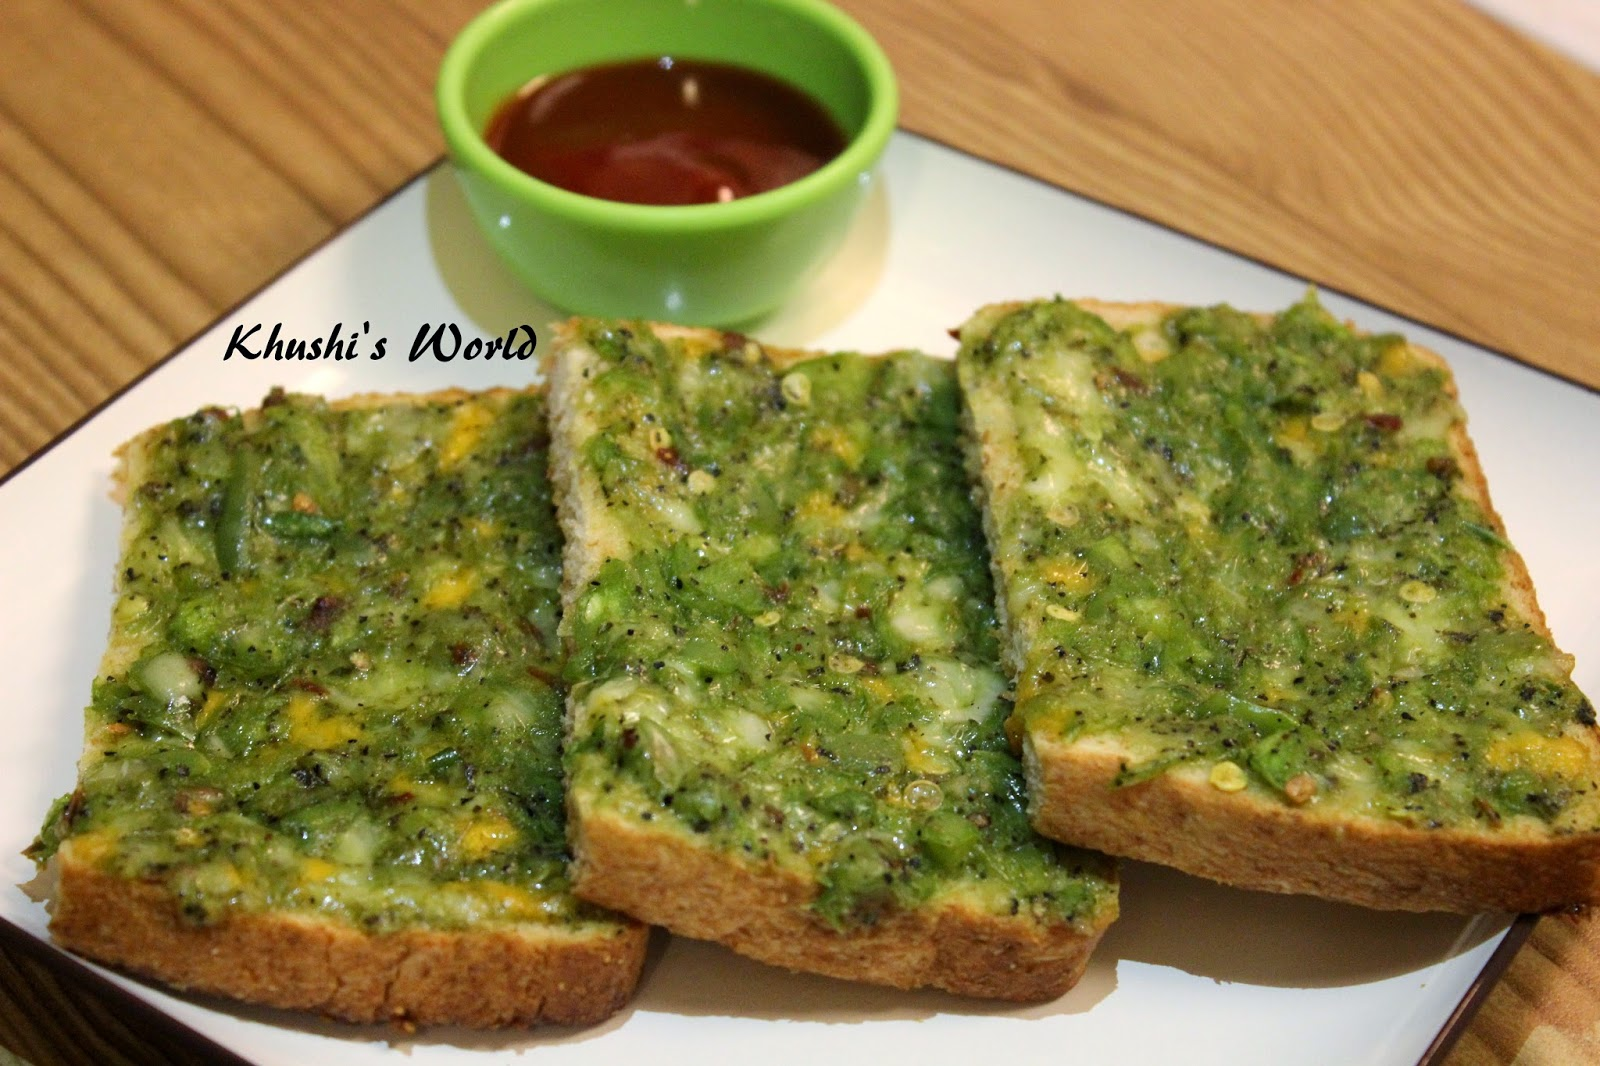 Khushi's World Cheese Chilli Toast